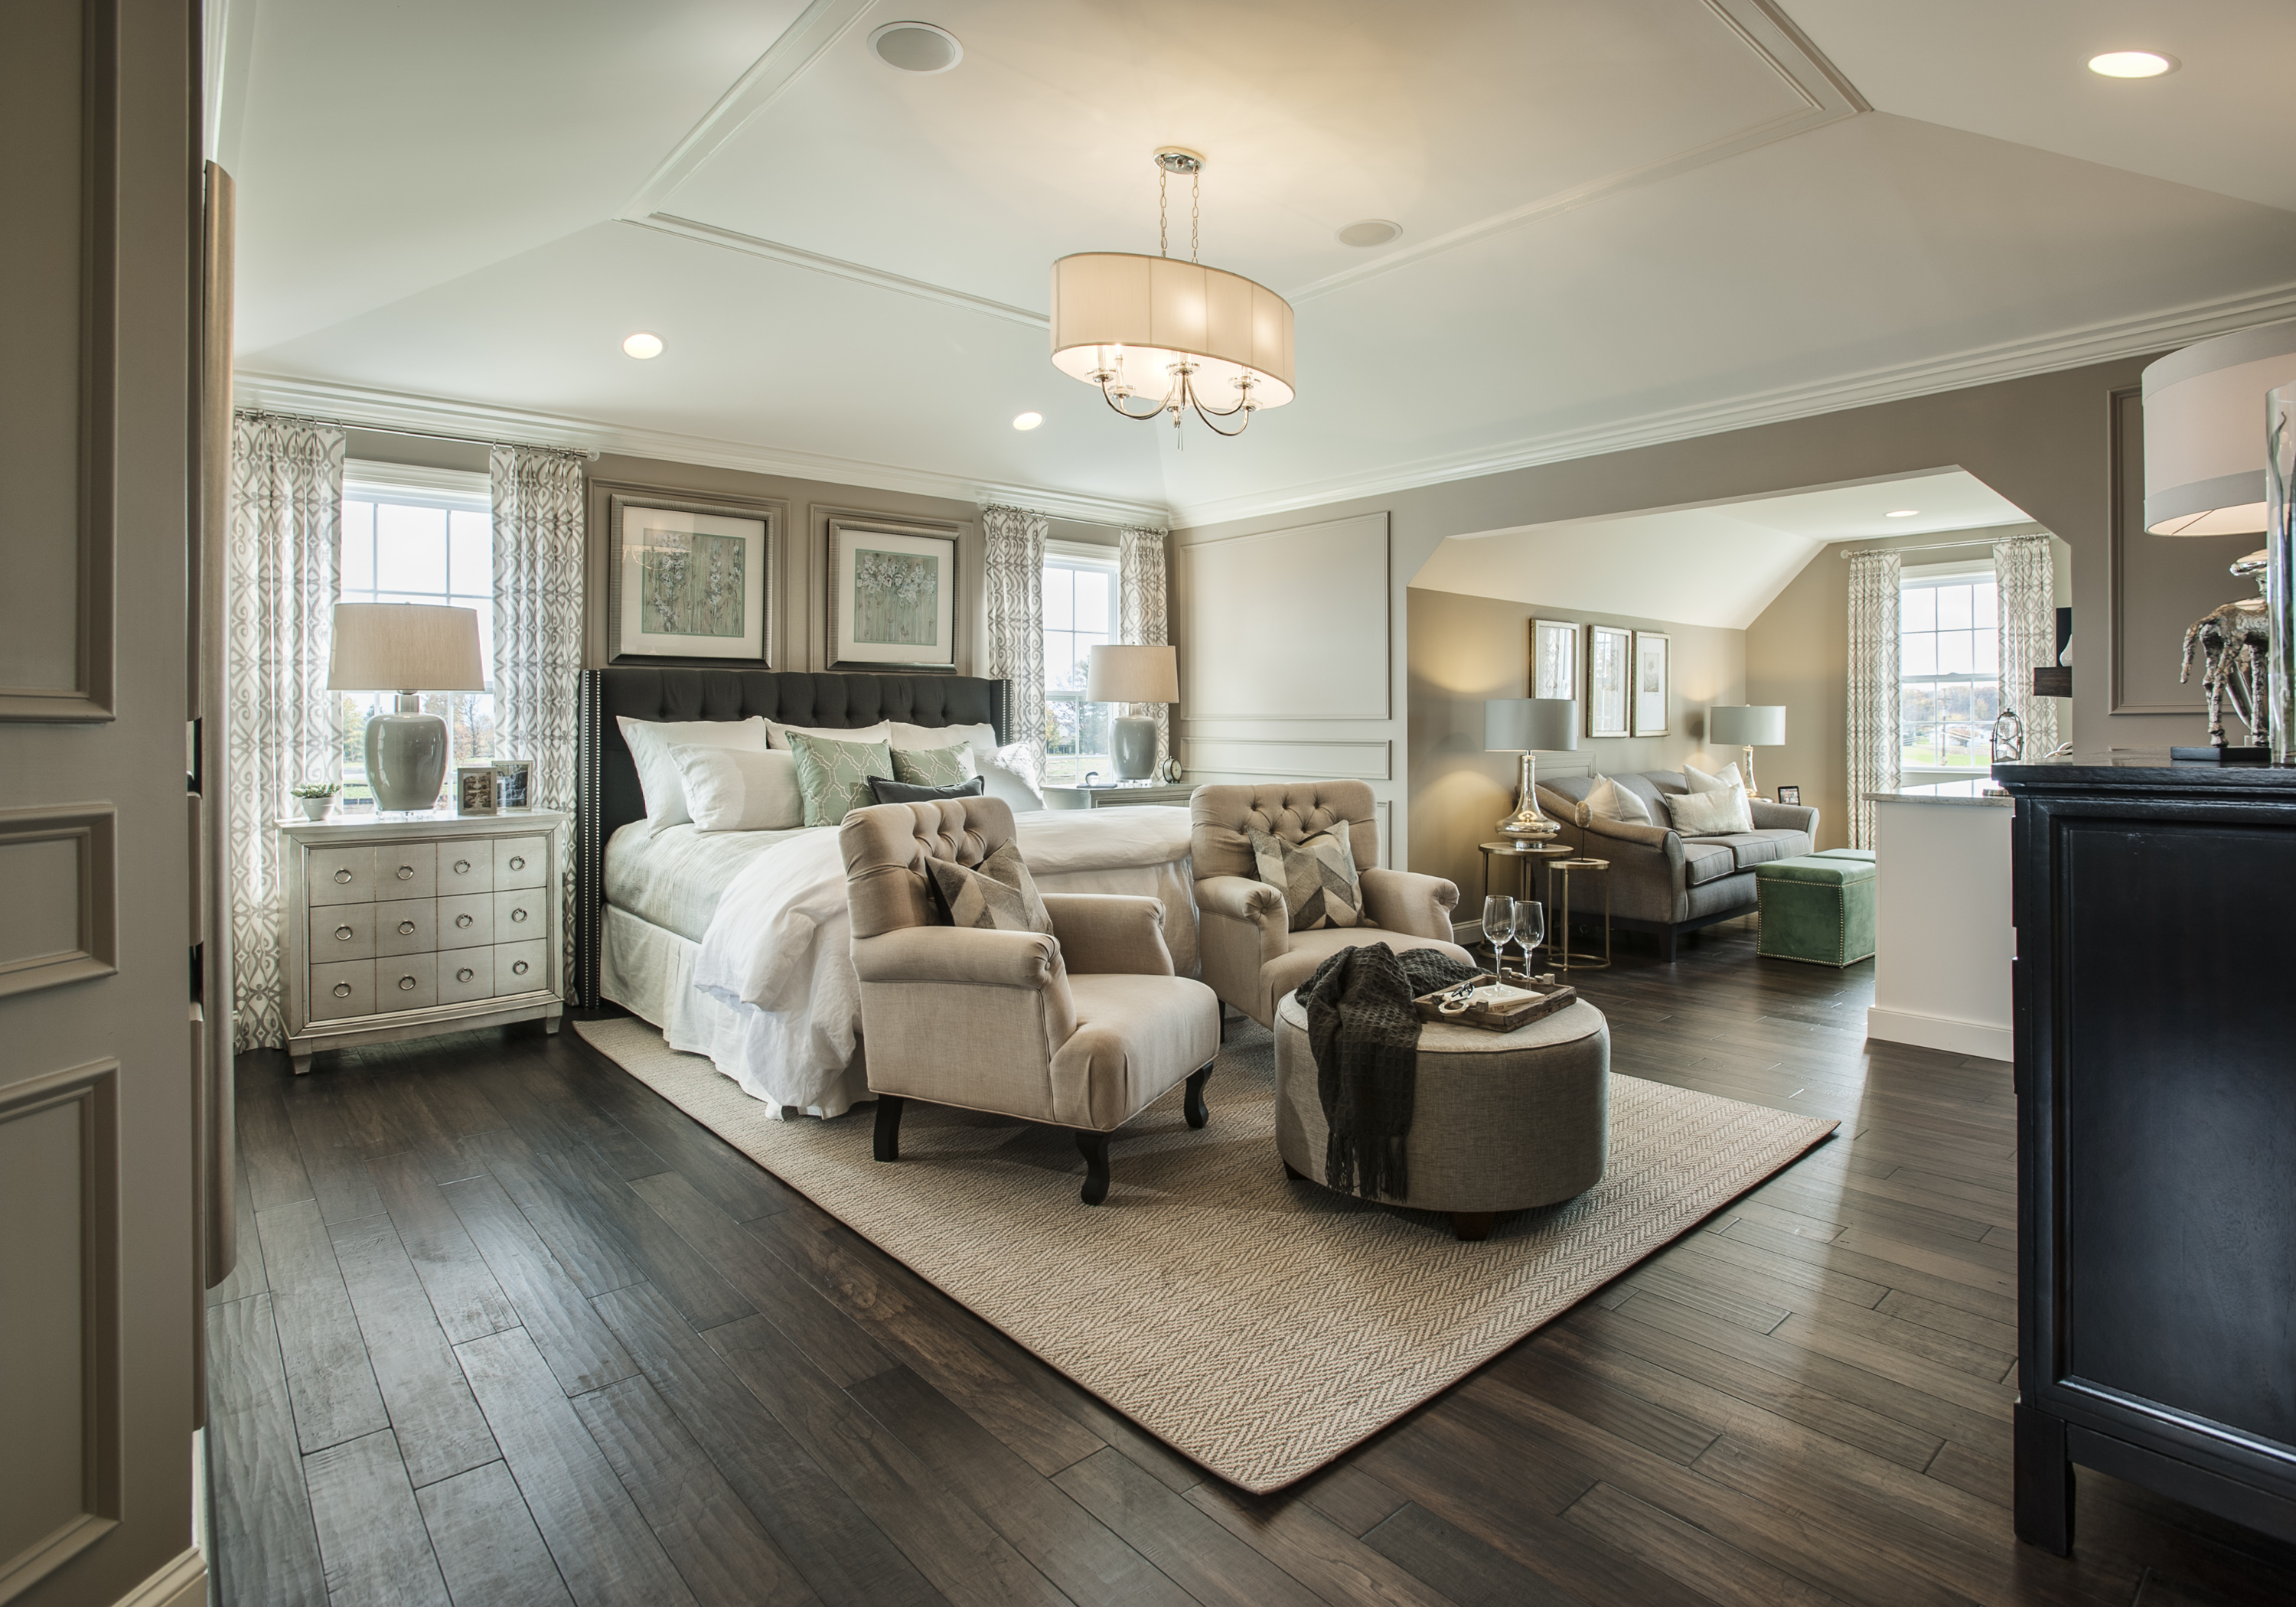 BUCKS COUNTY PA - MASTER SUITE